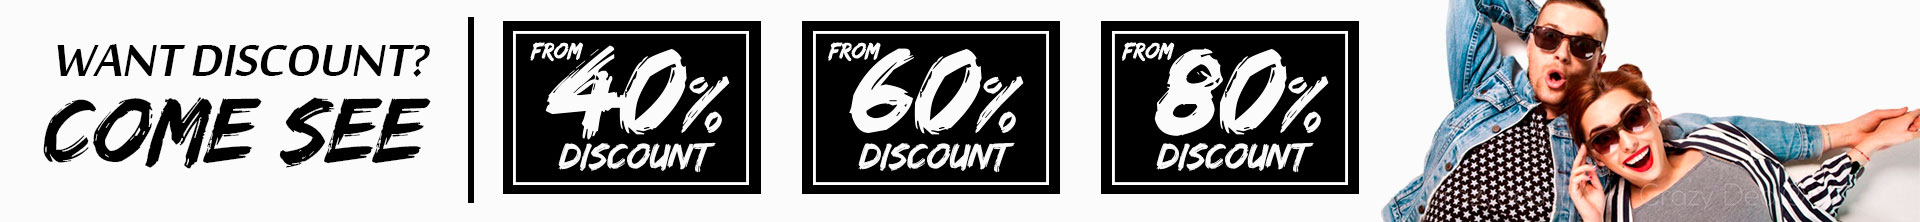 Discount Calitta Online Shop